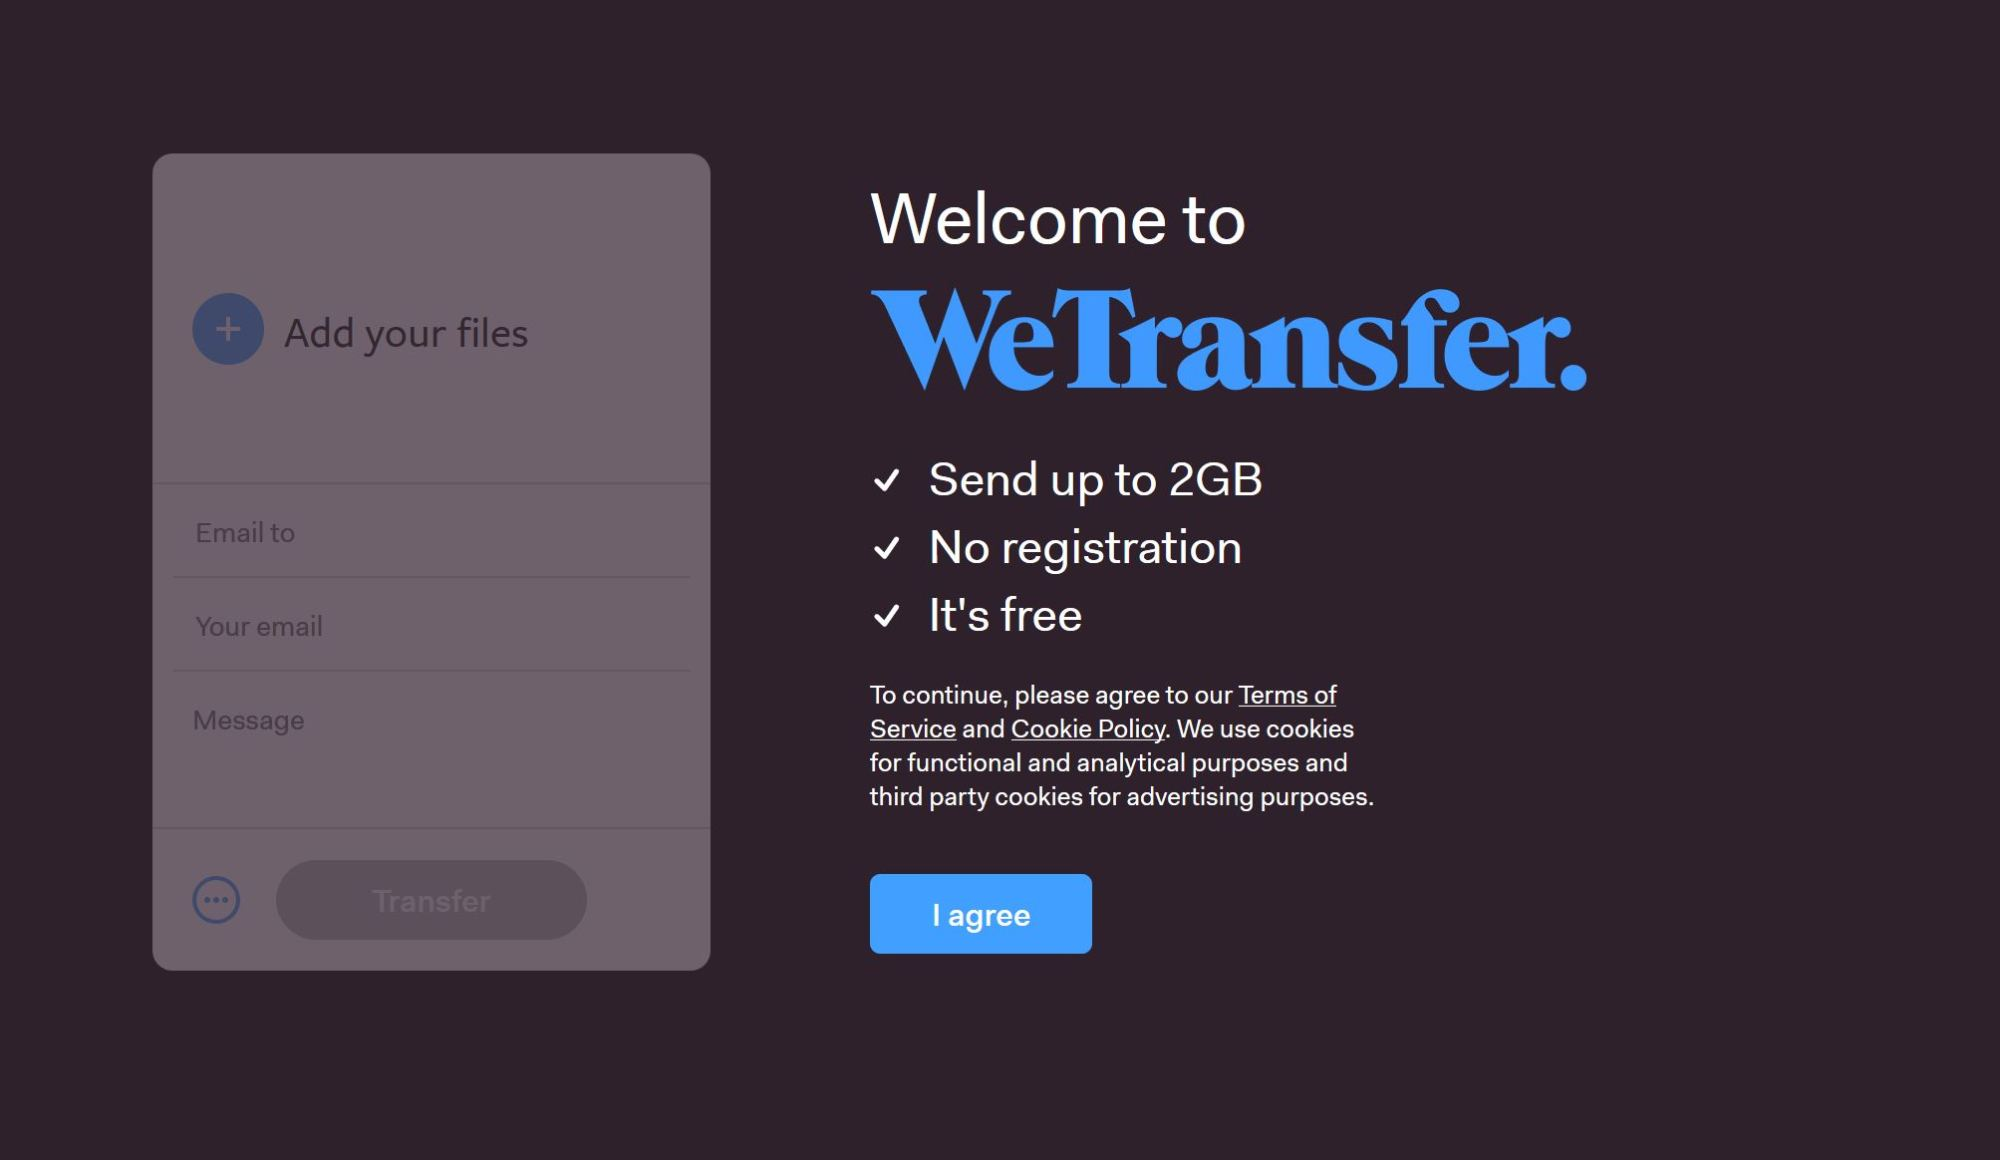 Image: WeTransfer allows for digital file sharing